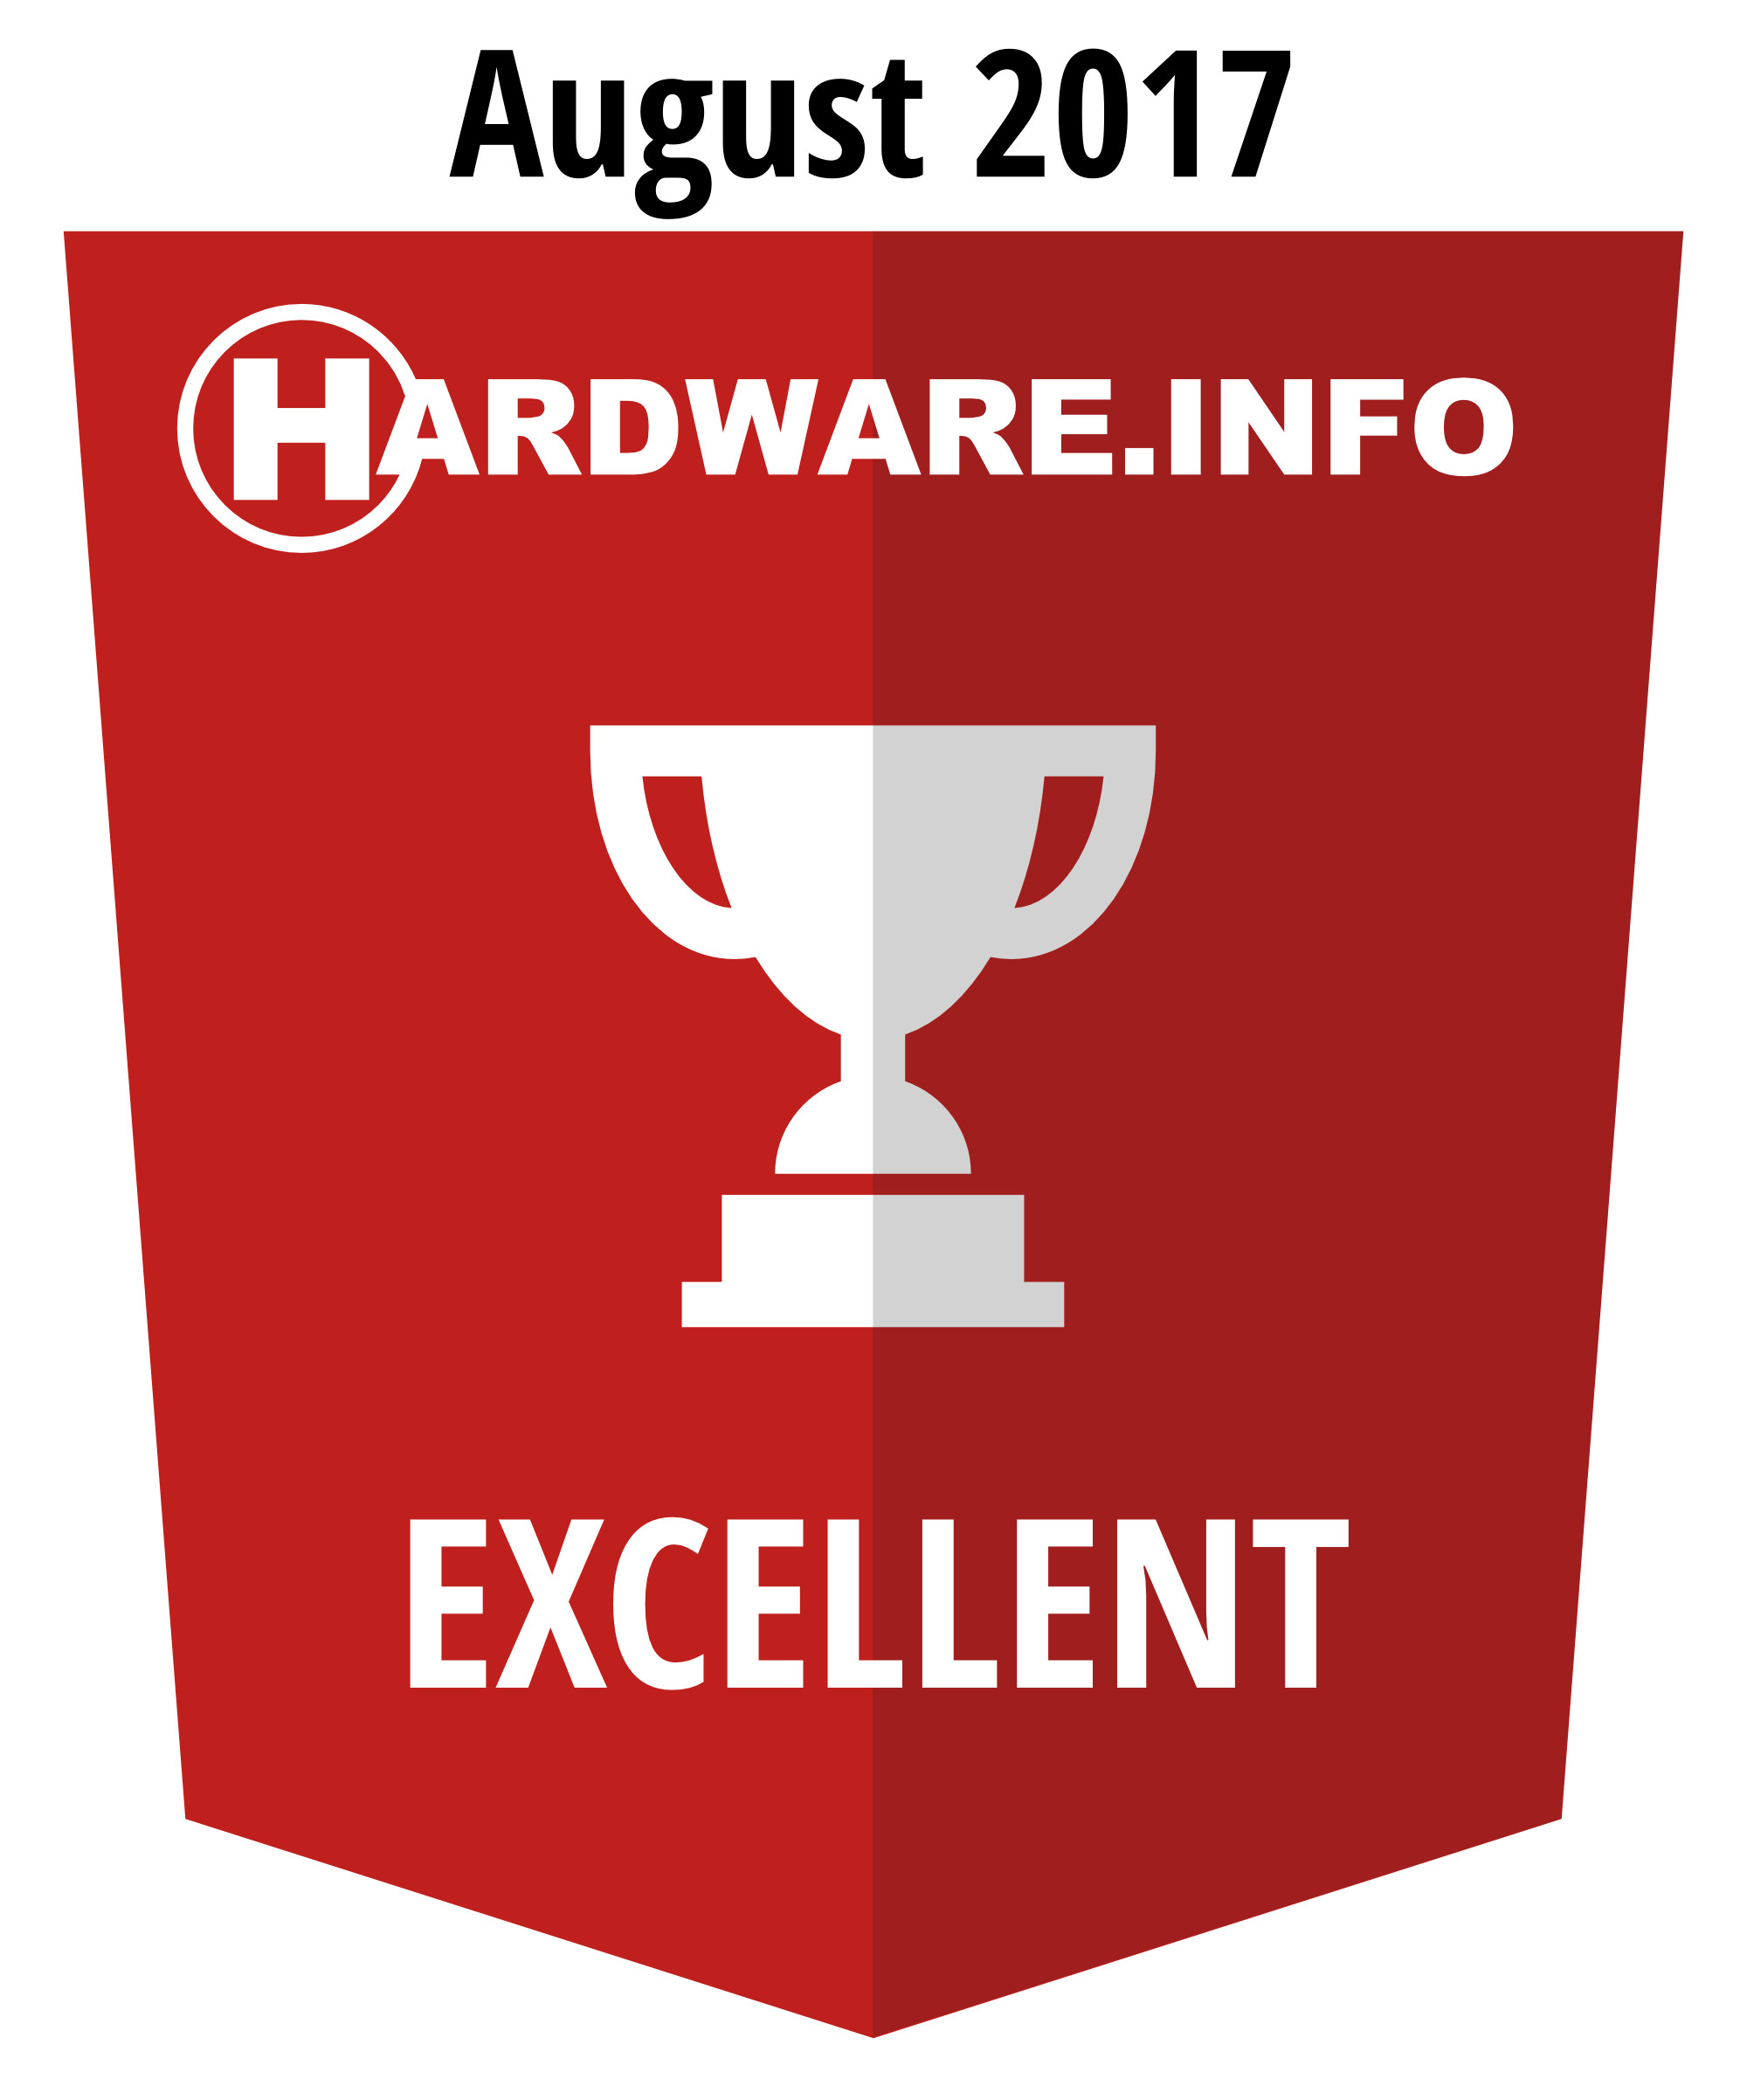 Hardware.info Excellent award 08-2017